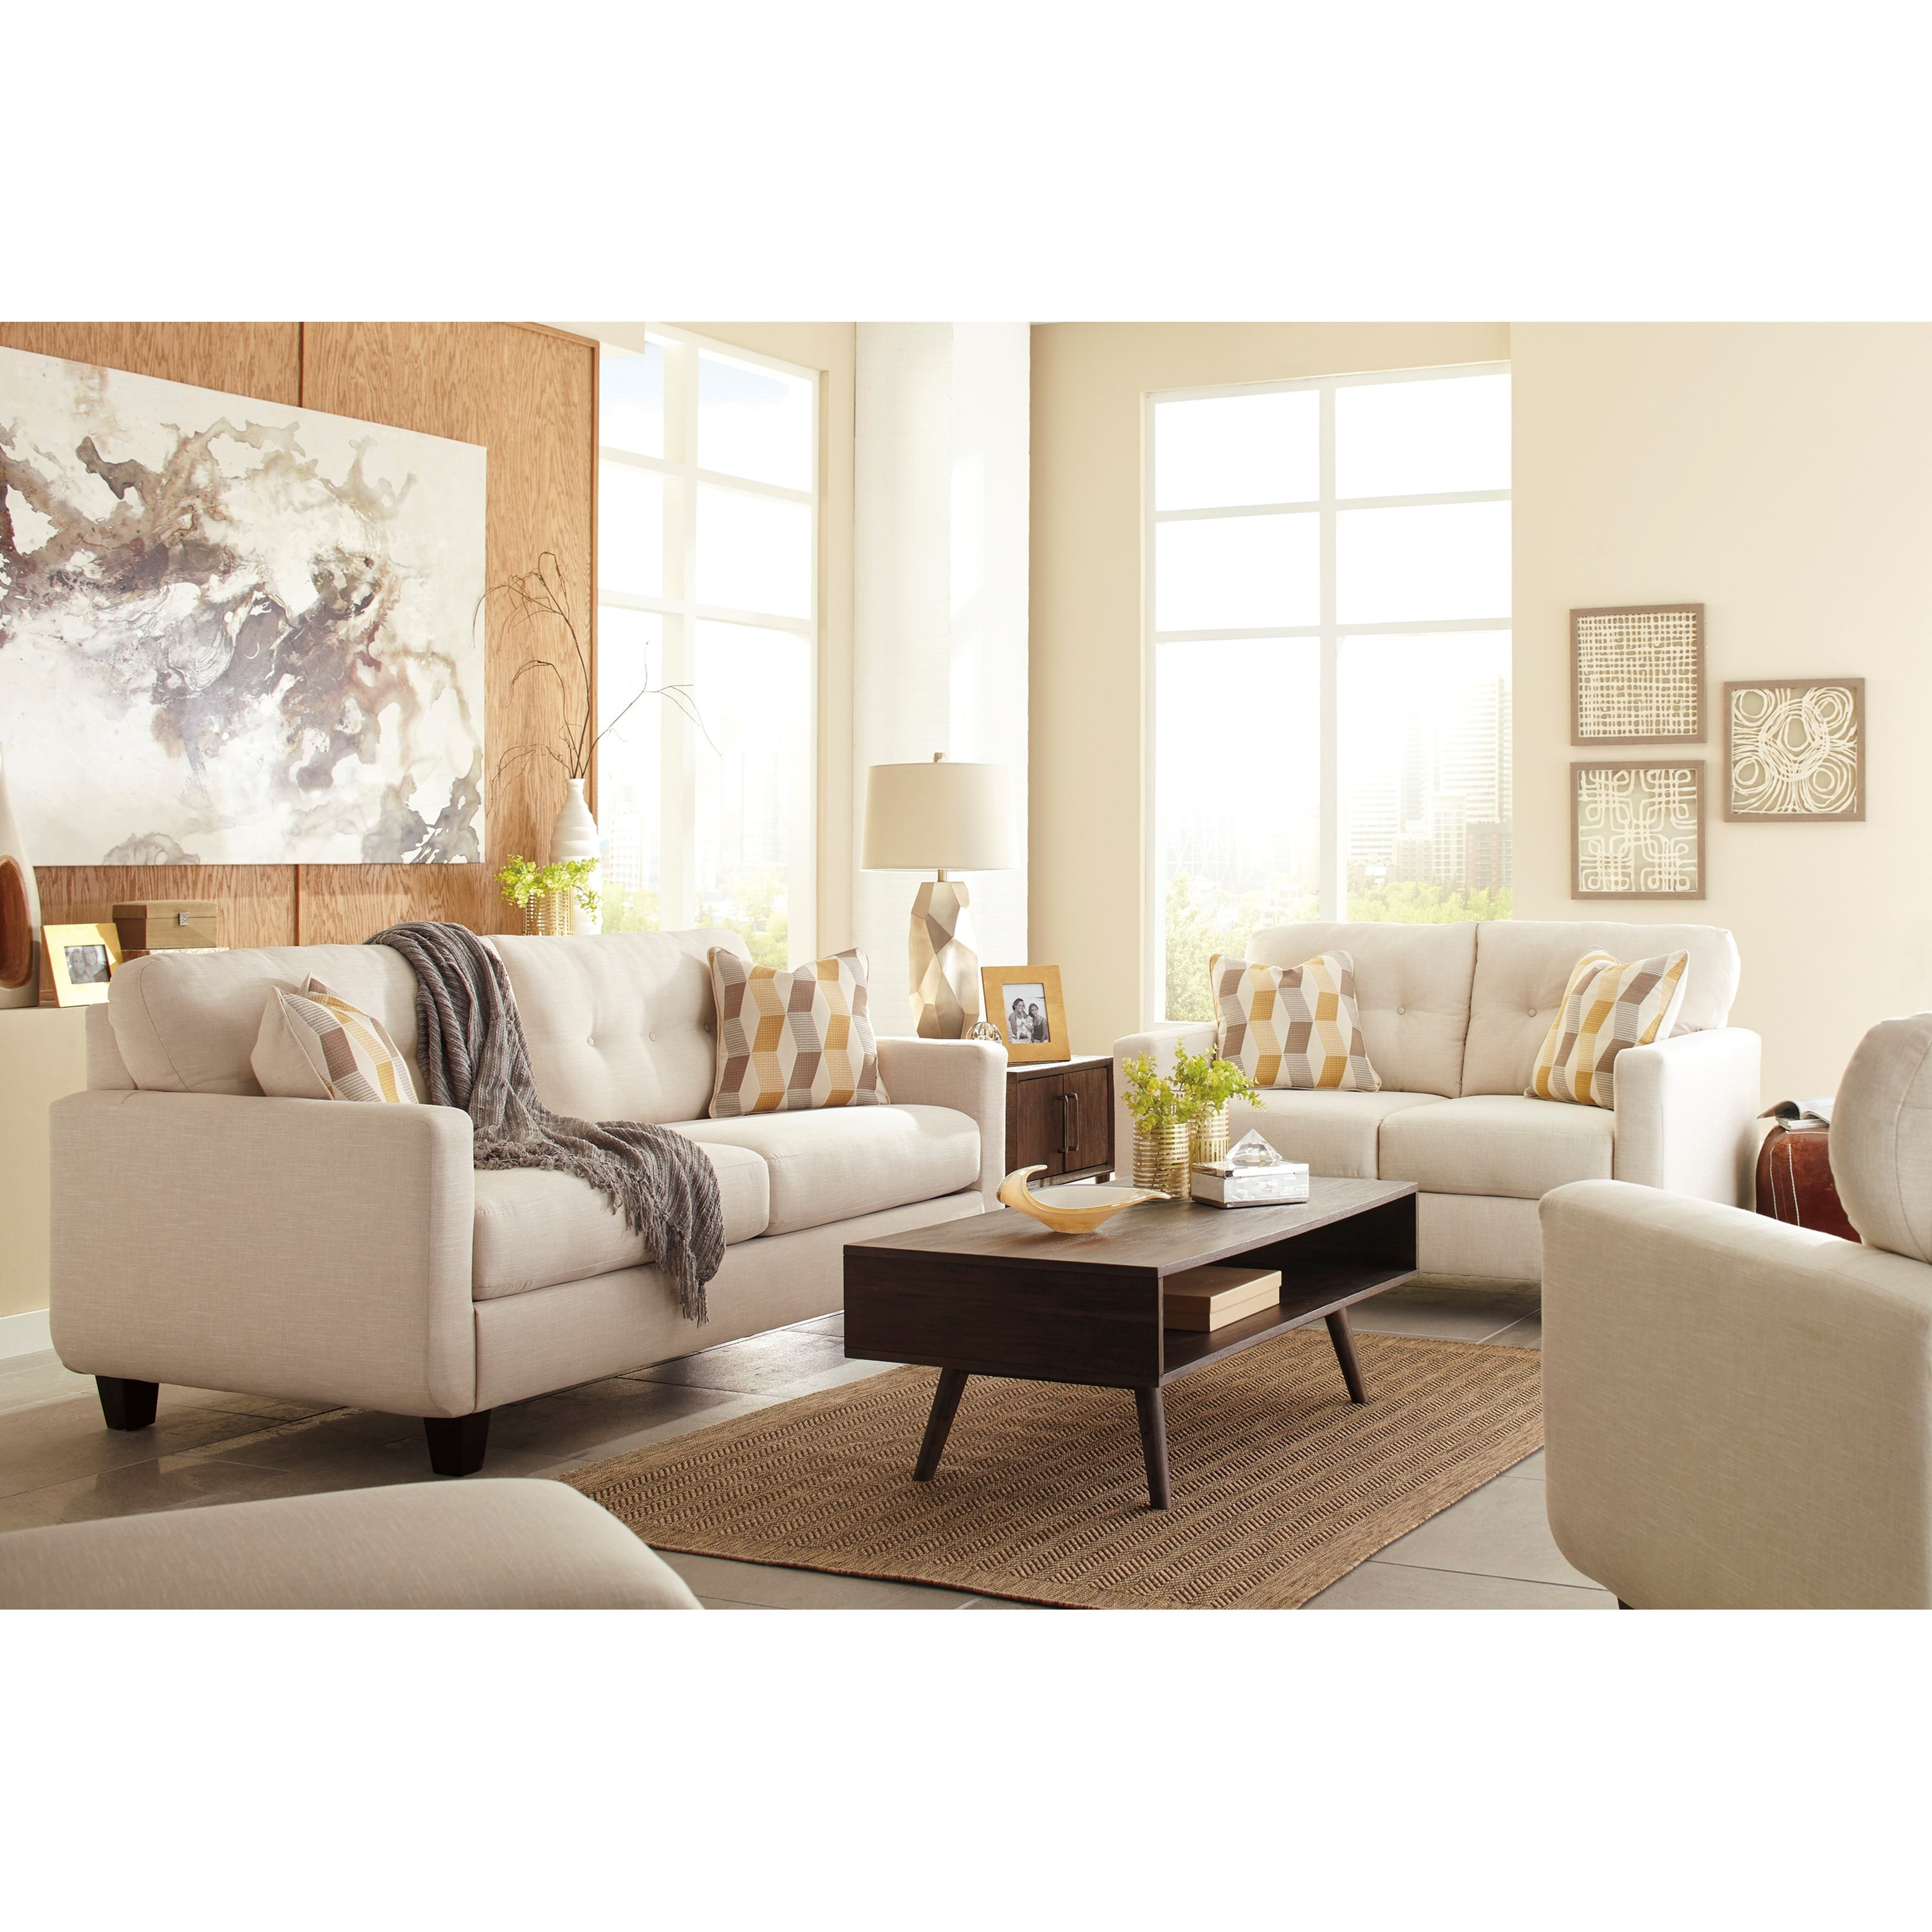 Benchcraft Drasco Stationary Living Room Group - Item Number: 59802 Living Room Group 2